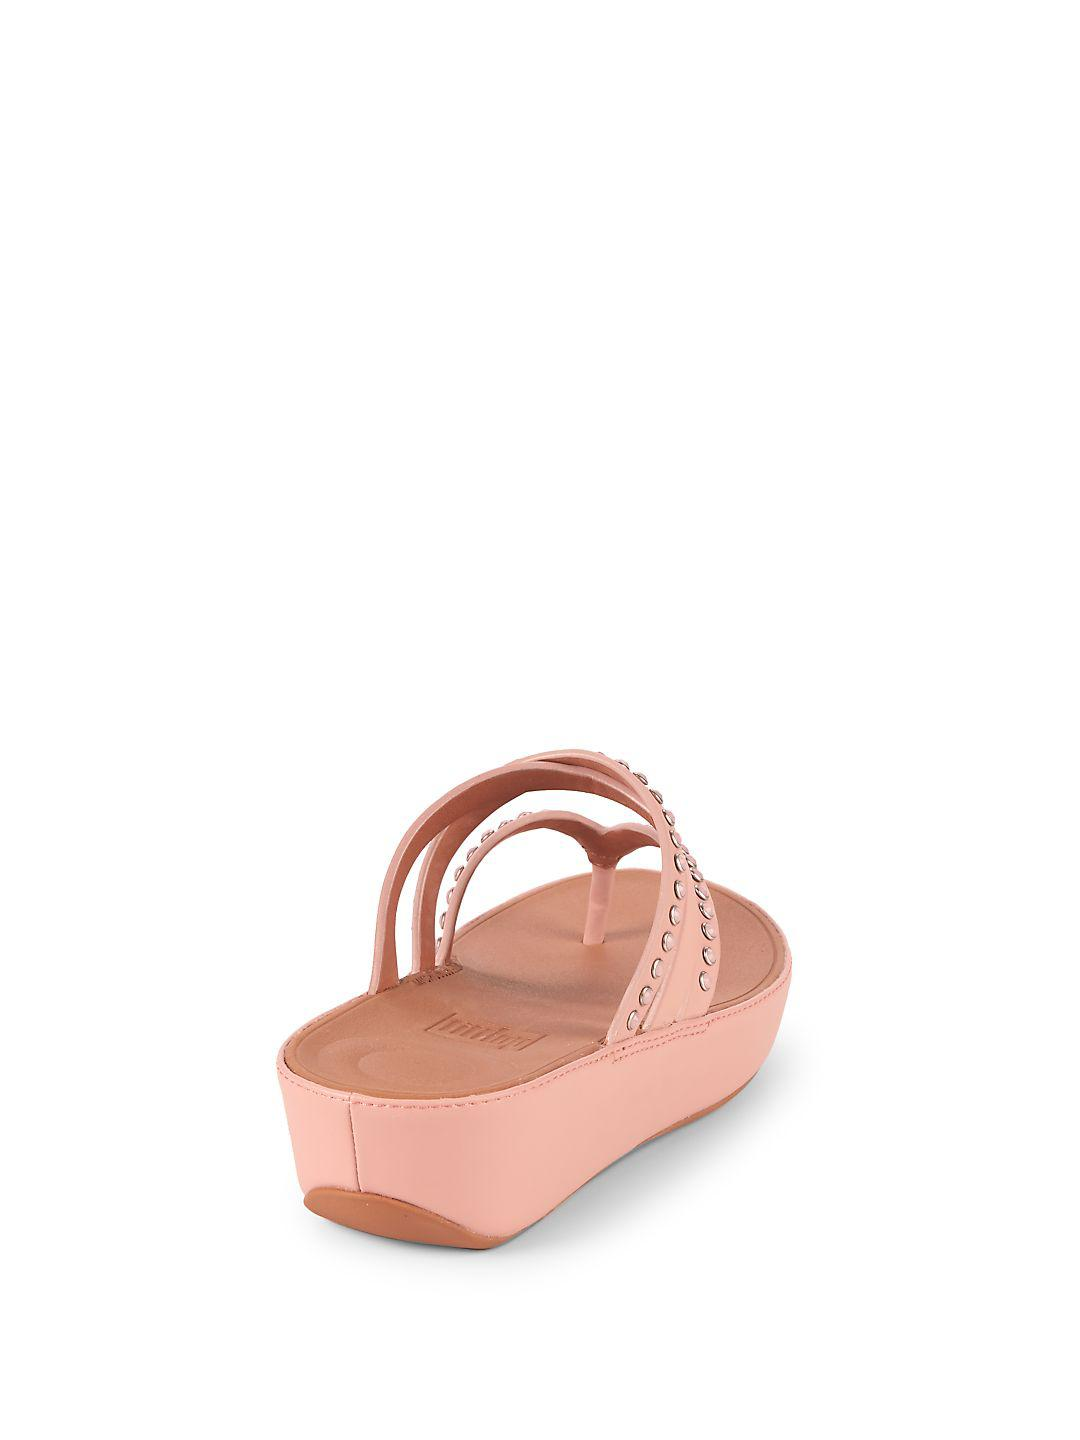 c10ba8e738e Lyst - Fitflop Linny Leather Flip Flops in Pink